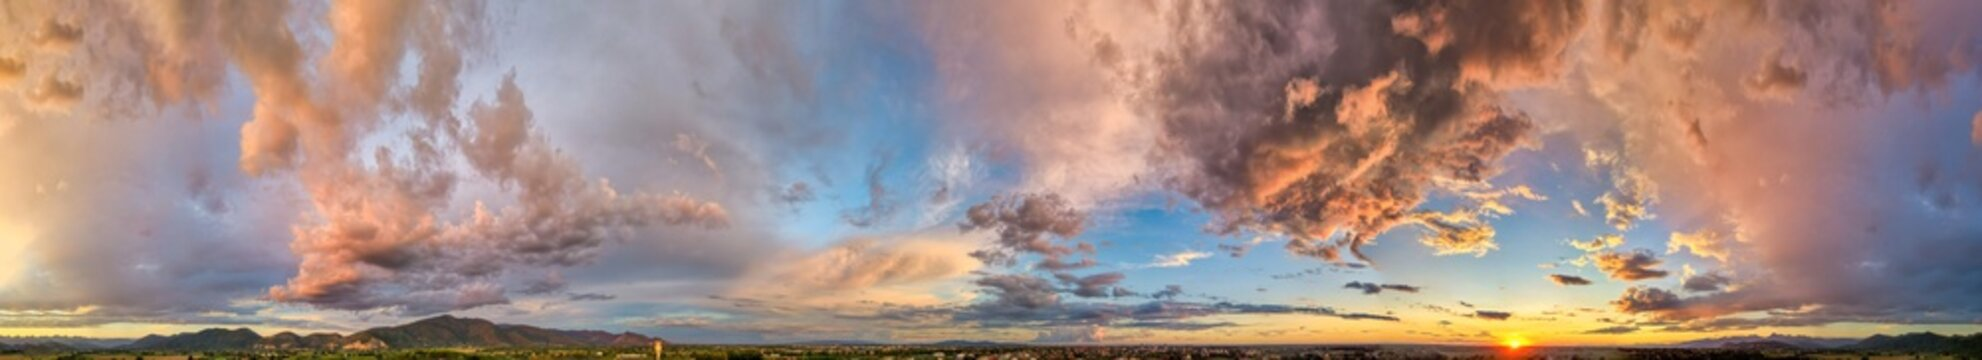 Amazing panoramic aerial view of sunset sky. Beautiful clouds and colors at dusk